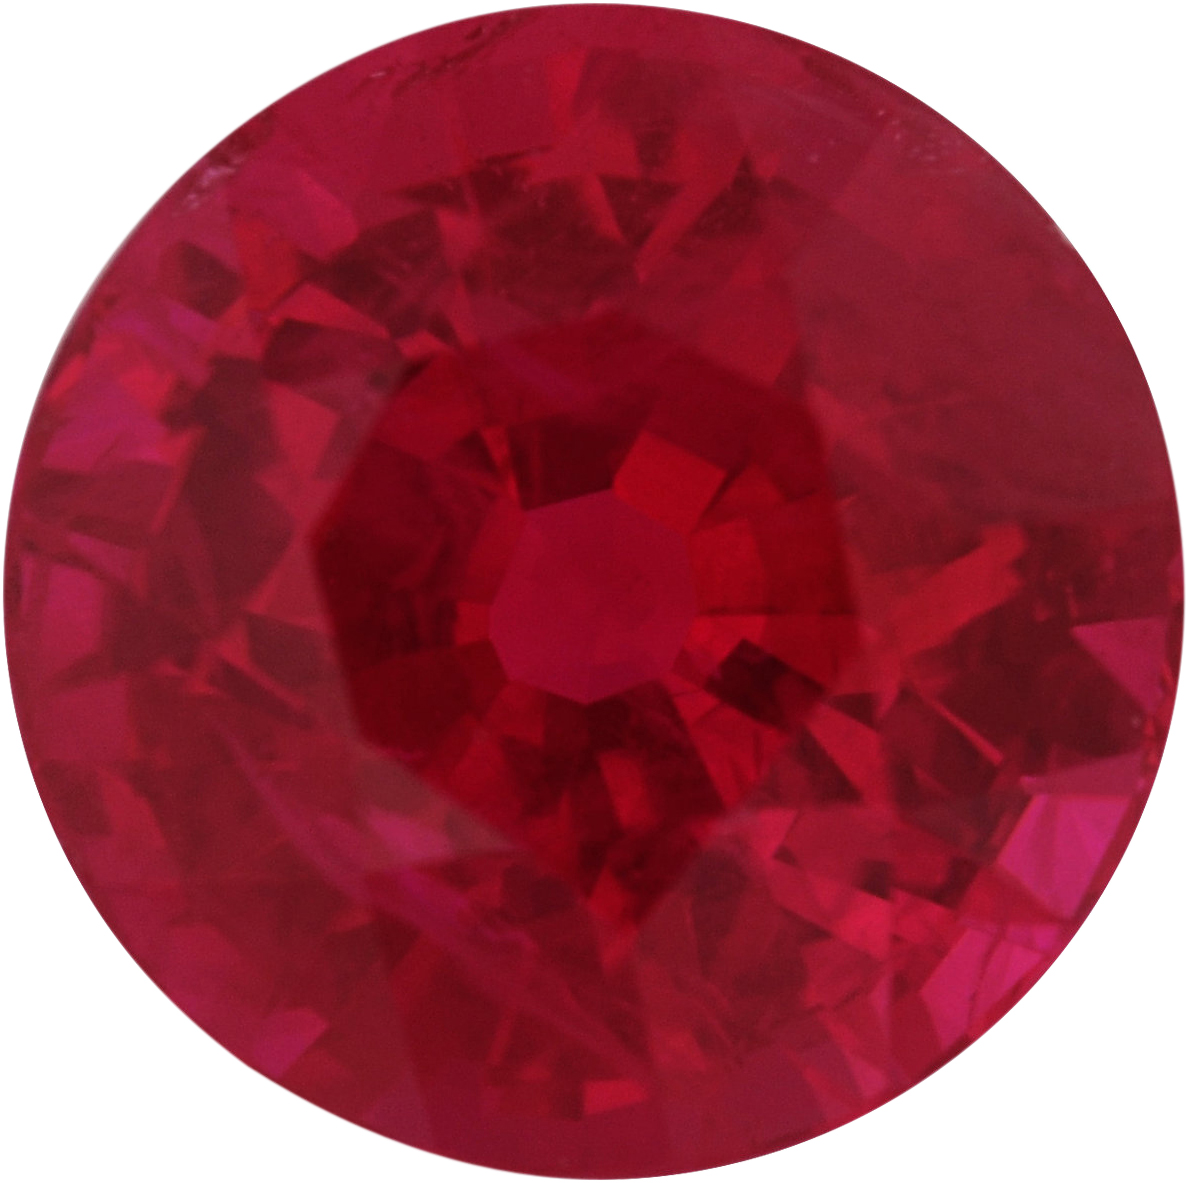 6.15 mm, Ruby Loose Gemstone in Round Cut, 1.27 carats